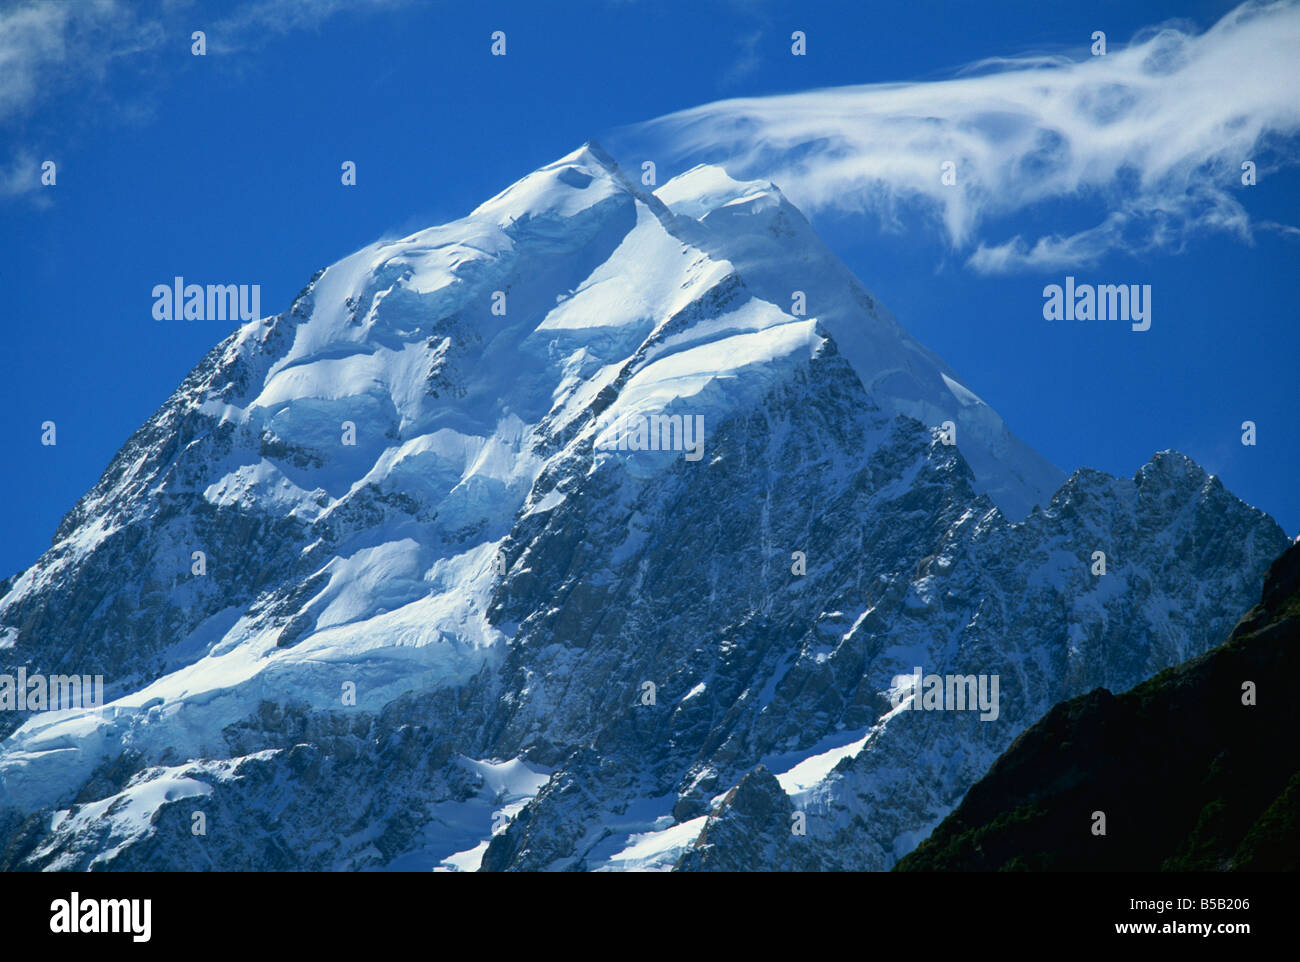 Mount Cook, highest mountain in Australasia, Mount Cook National Park, Canterbury, South Island, New Zealand, Pacific - Stock Image